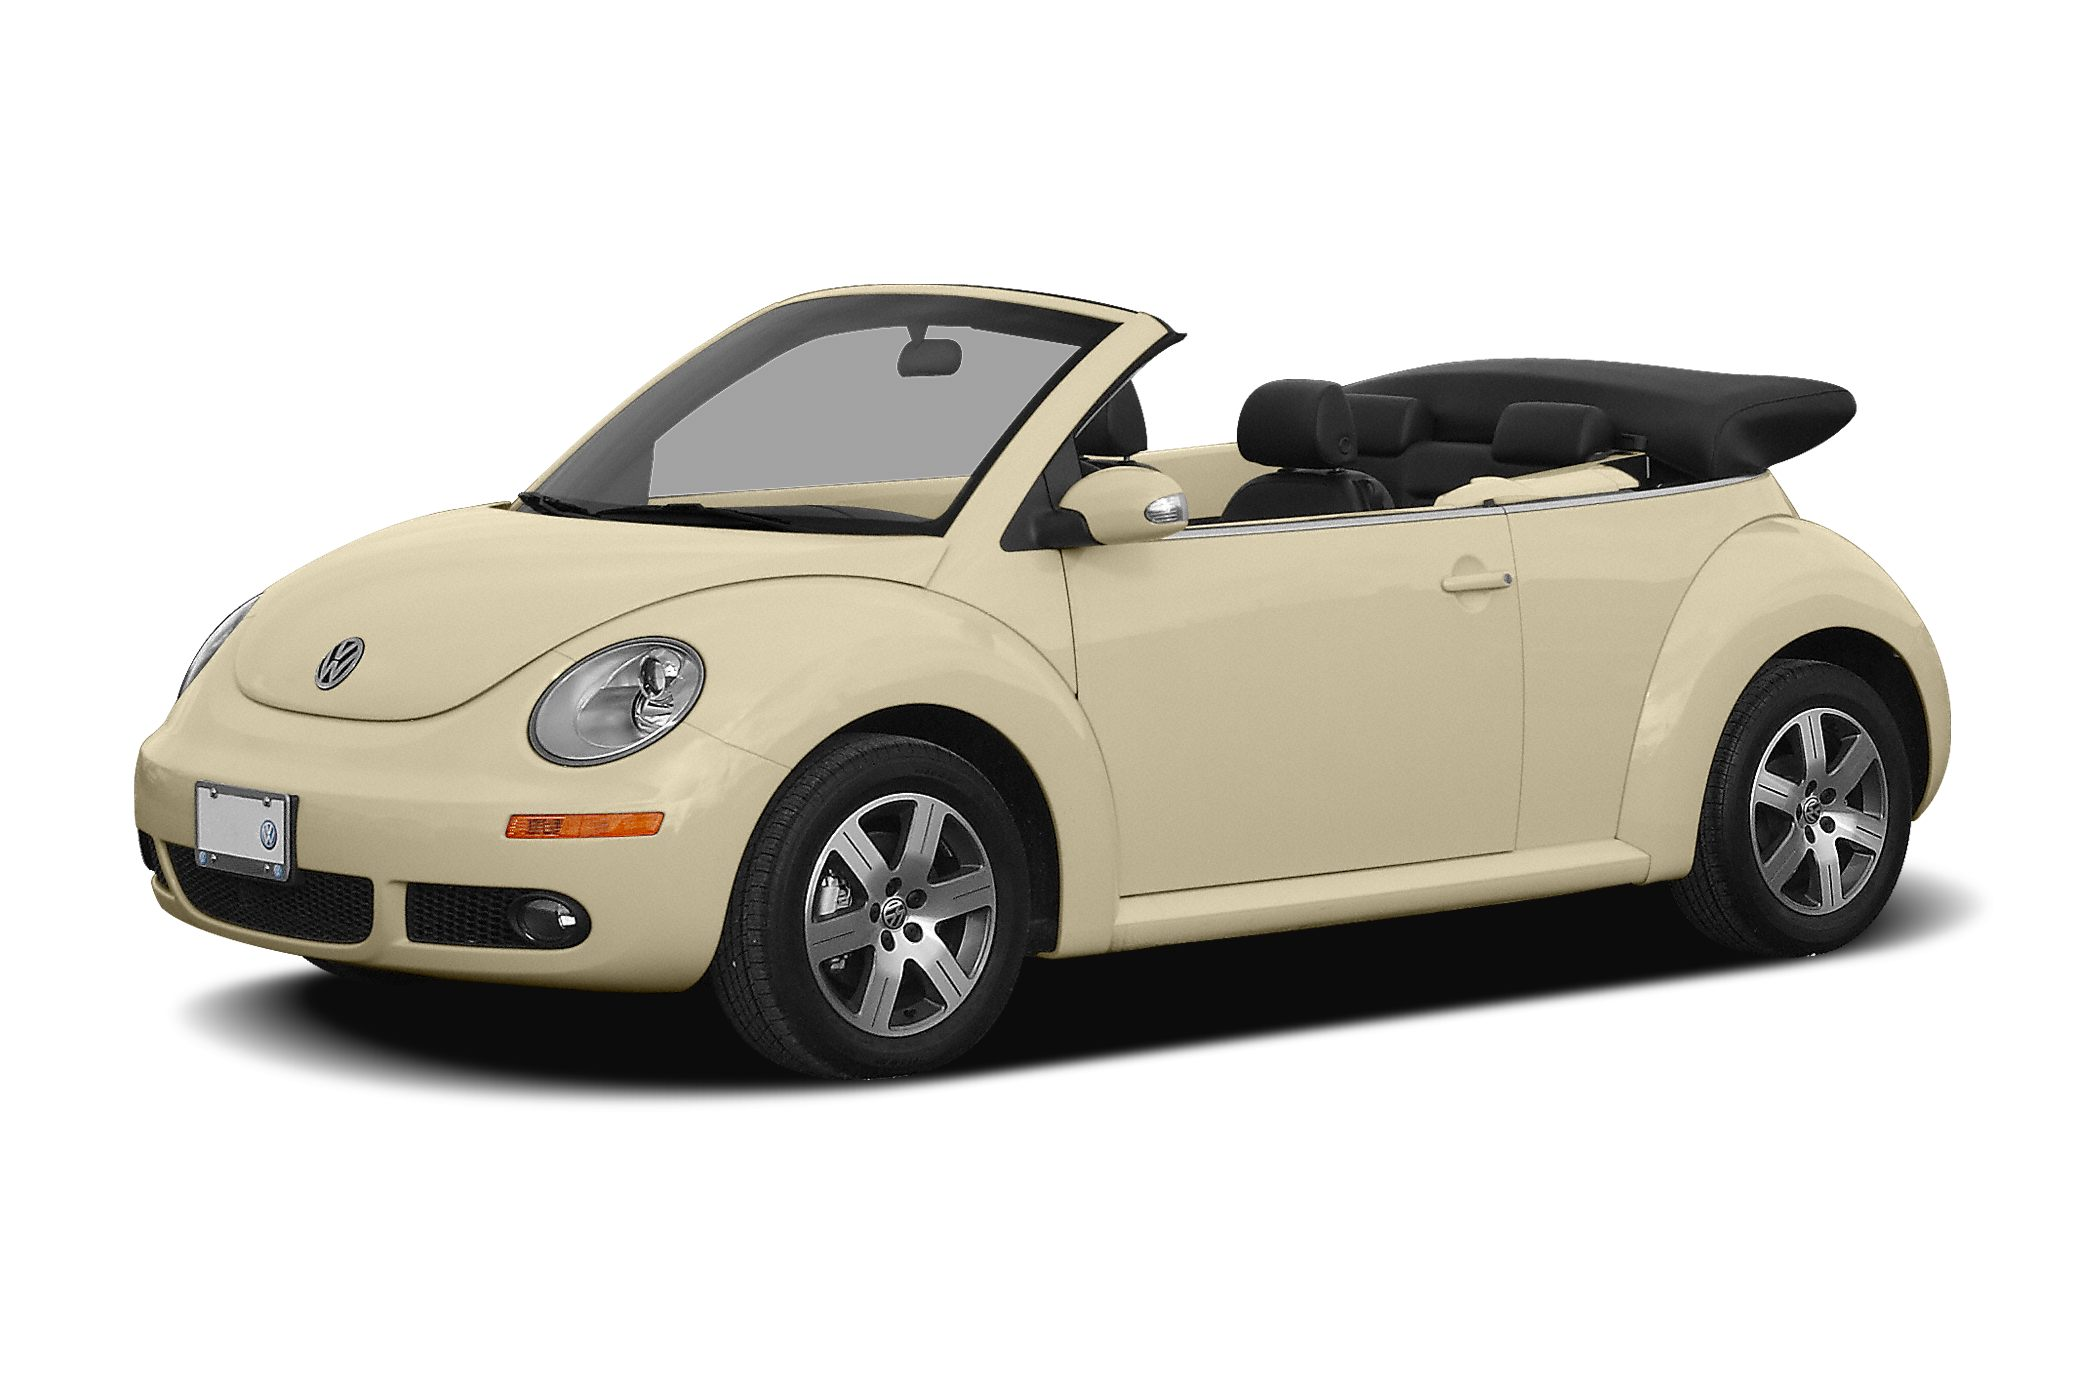 2010 Volkswagen New Beetle 2.5L Convertible for sale in Grand Rapids for $0 with 9,930 miles